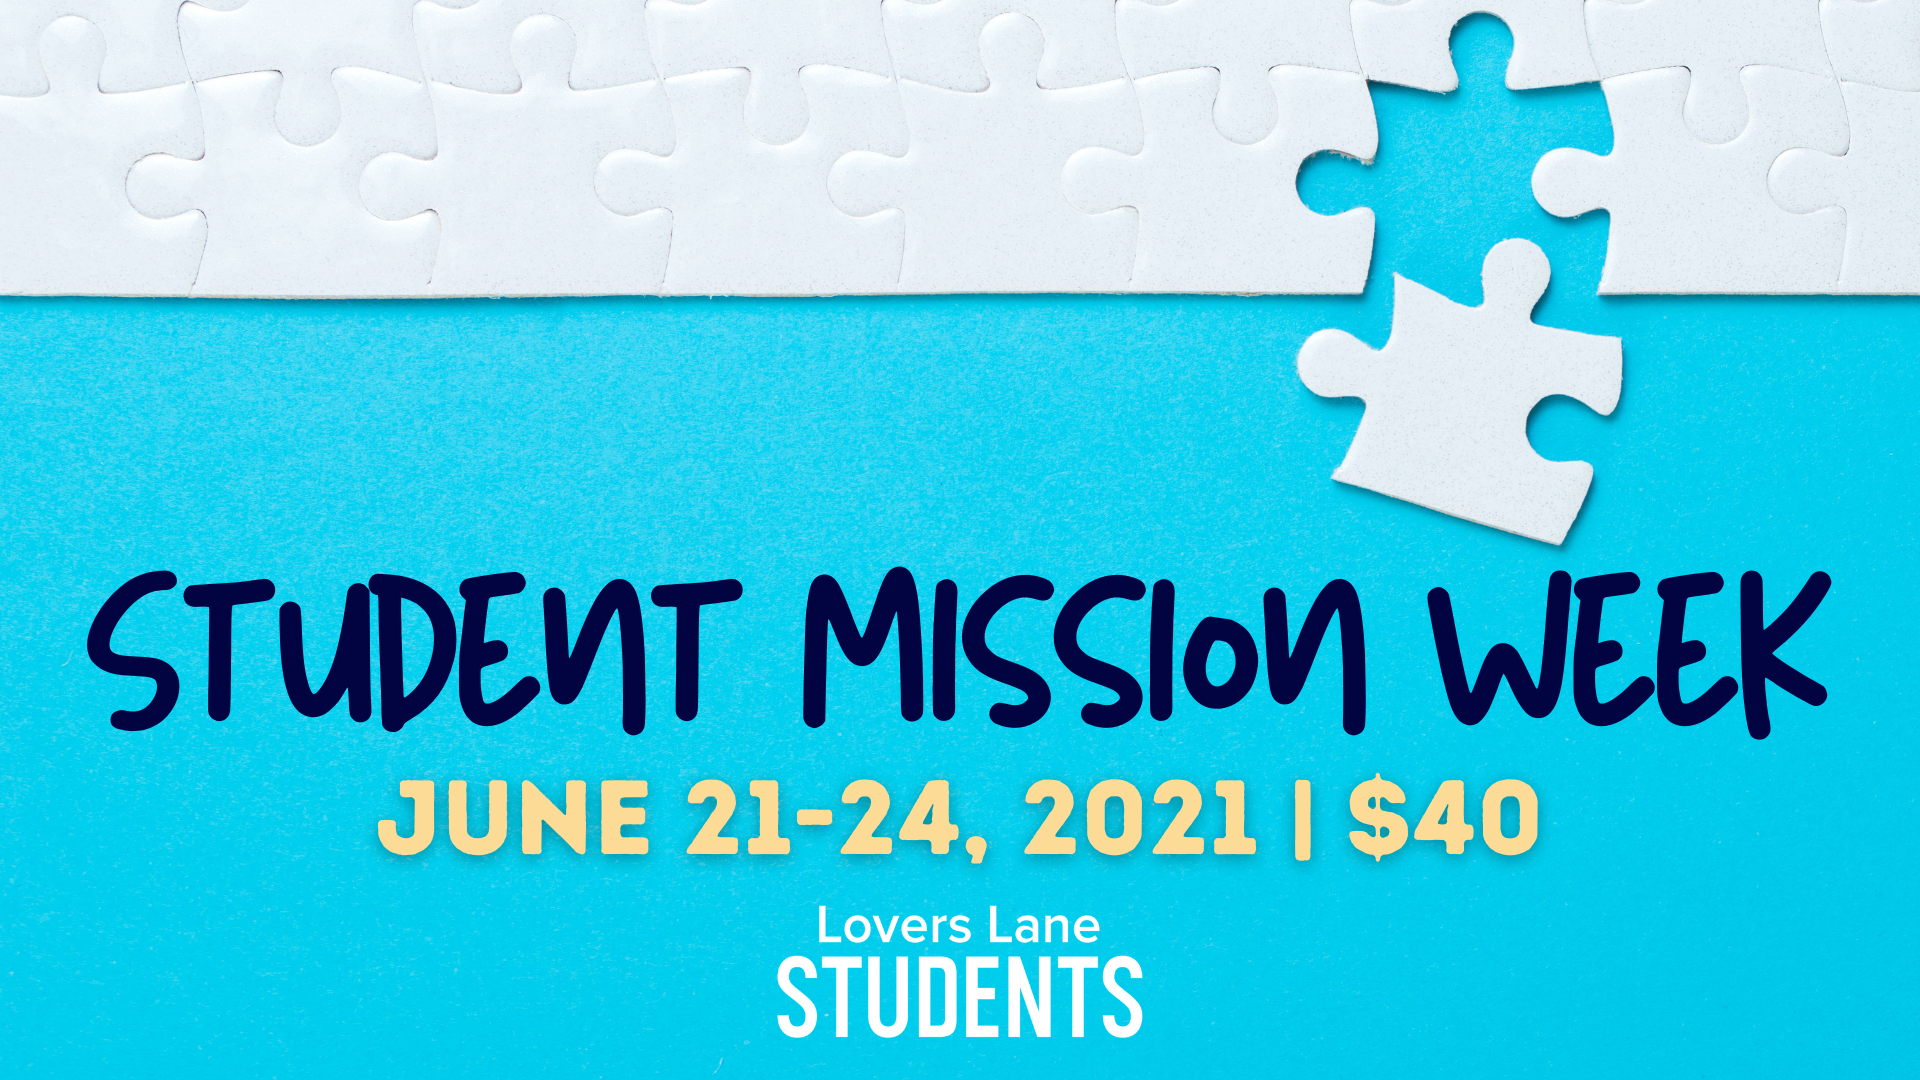 Students - Mission Week - 6.13-6.20